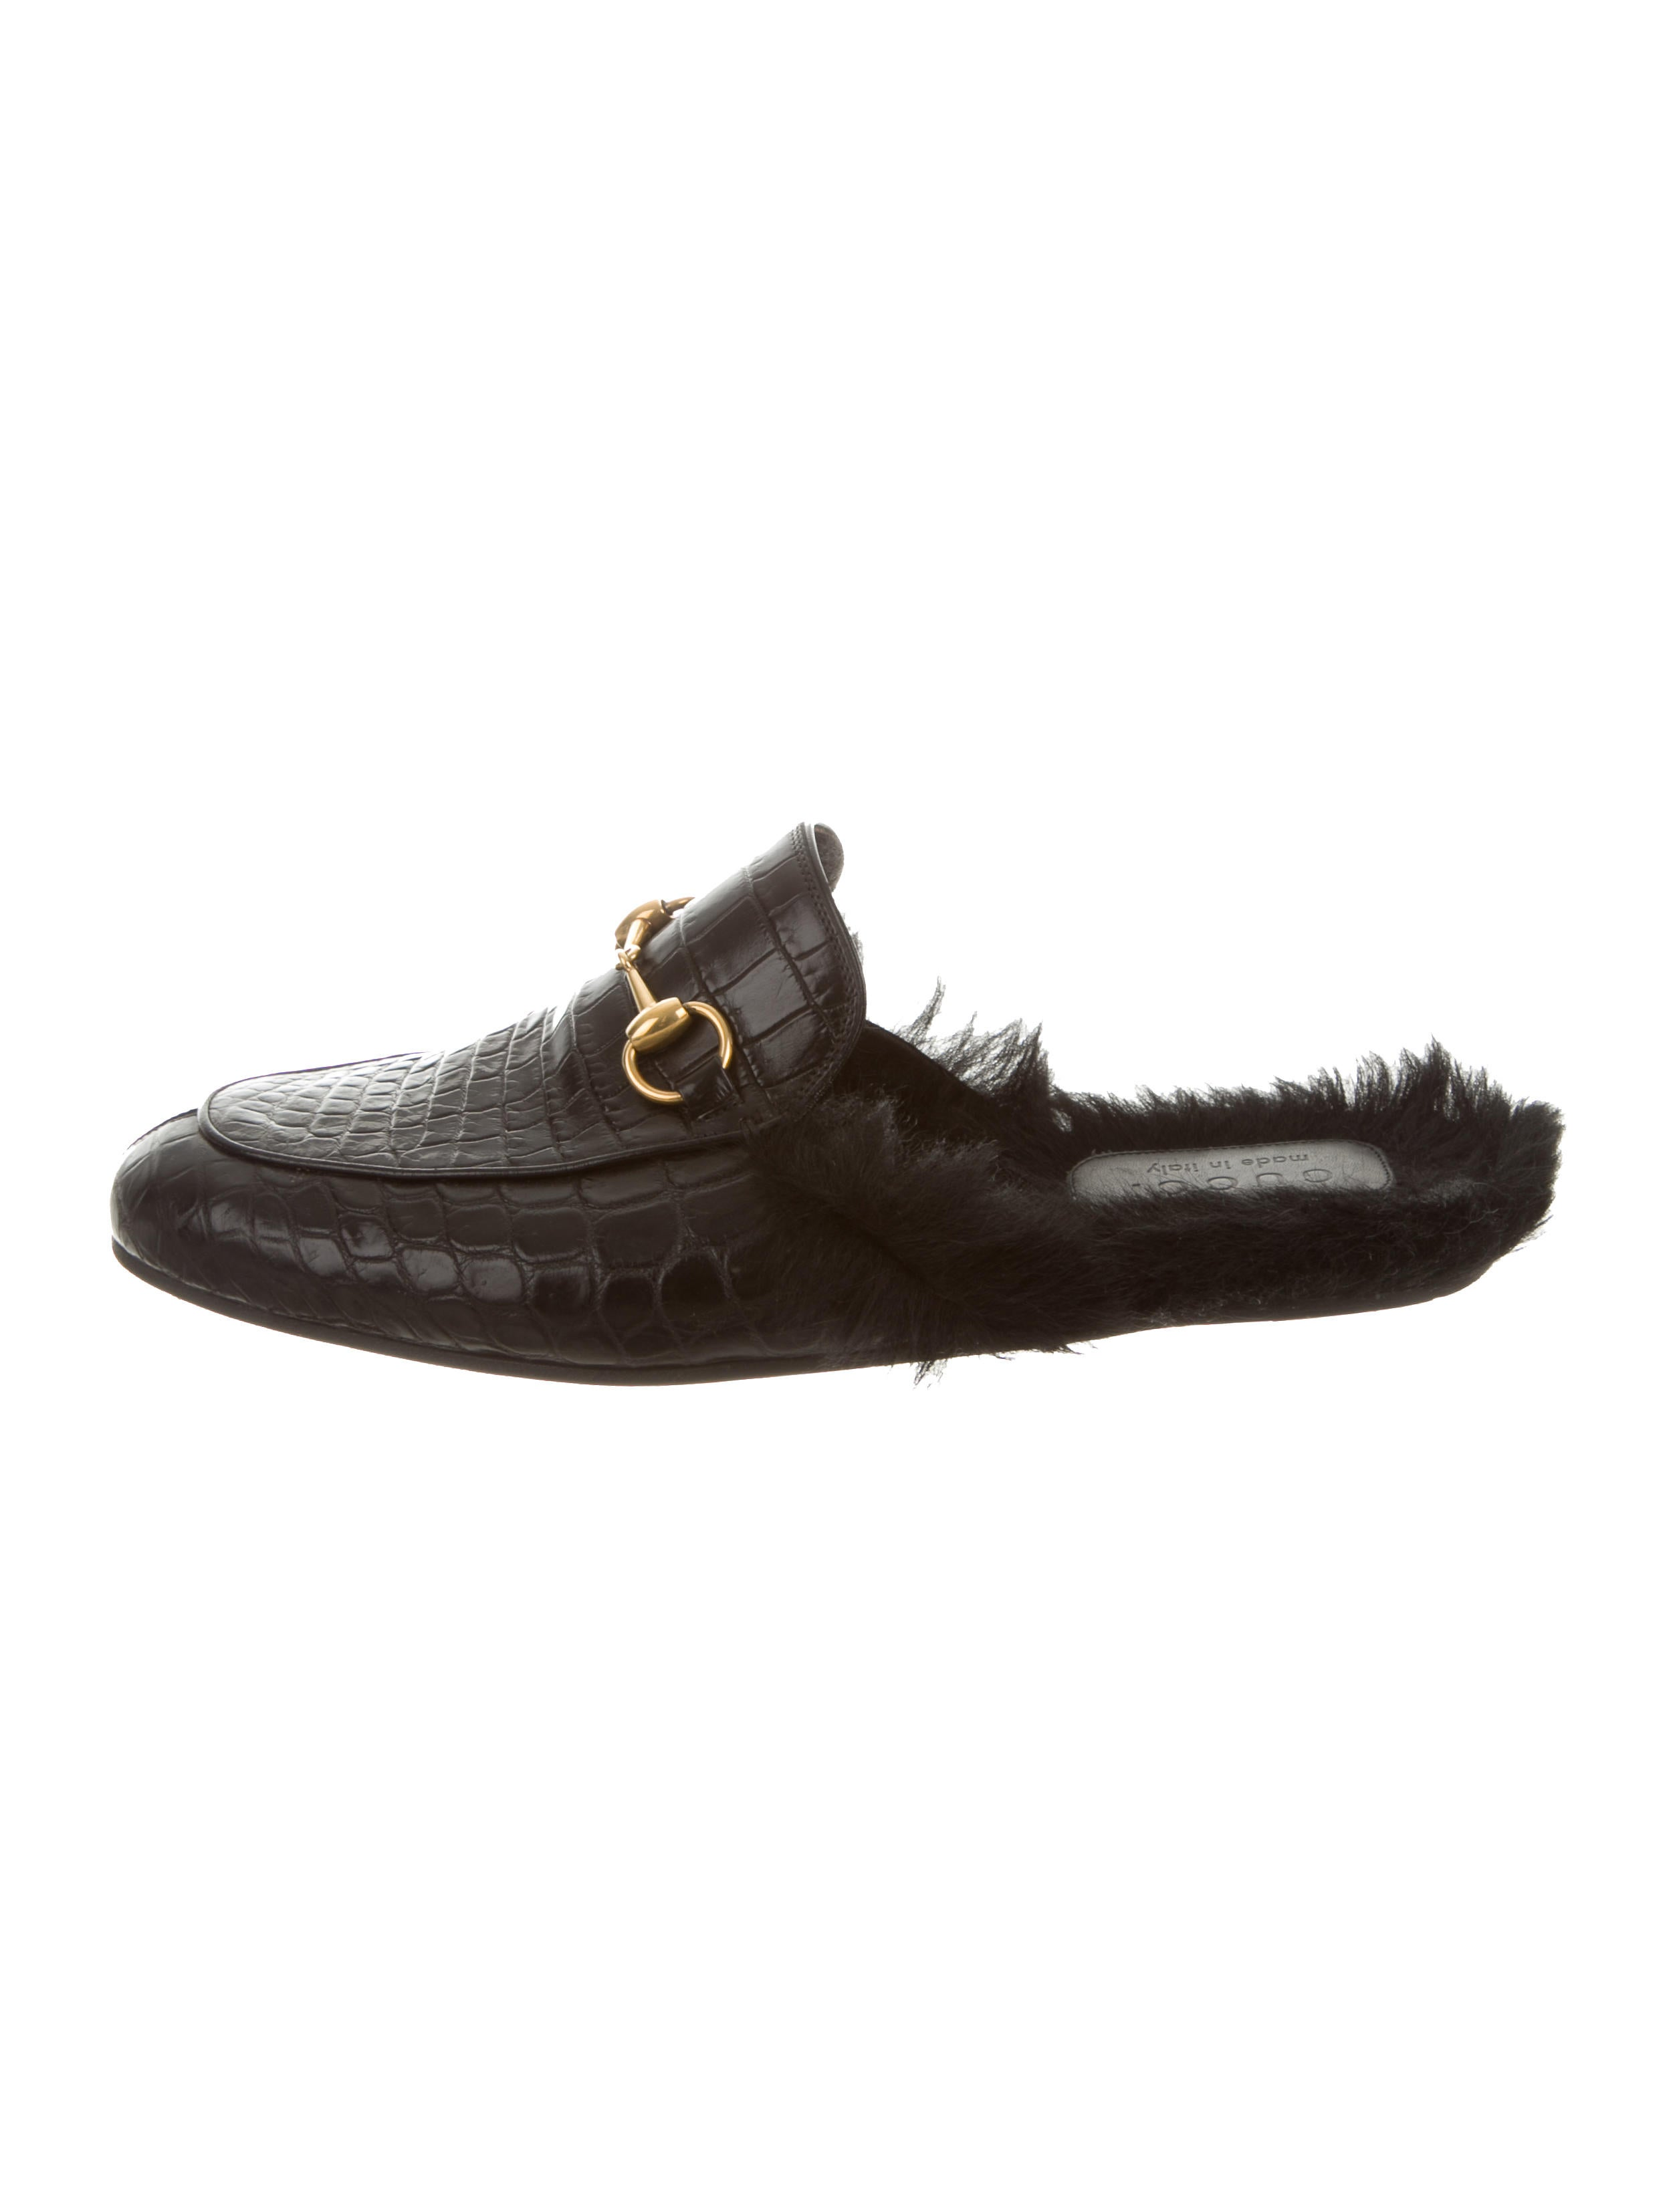 Gucci Princetown Crocodile Slippers - Shoes - GUC126236  99edded78056